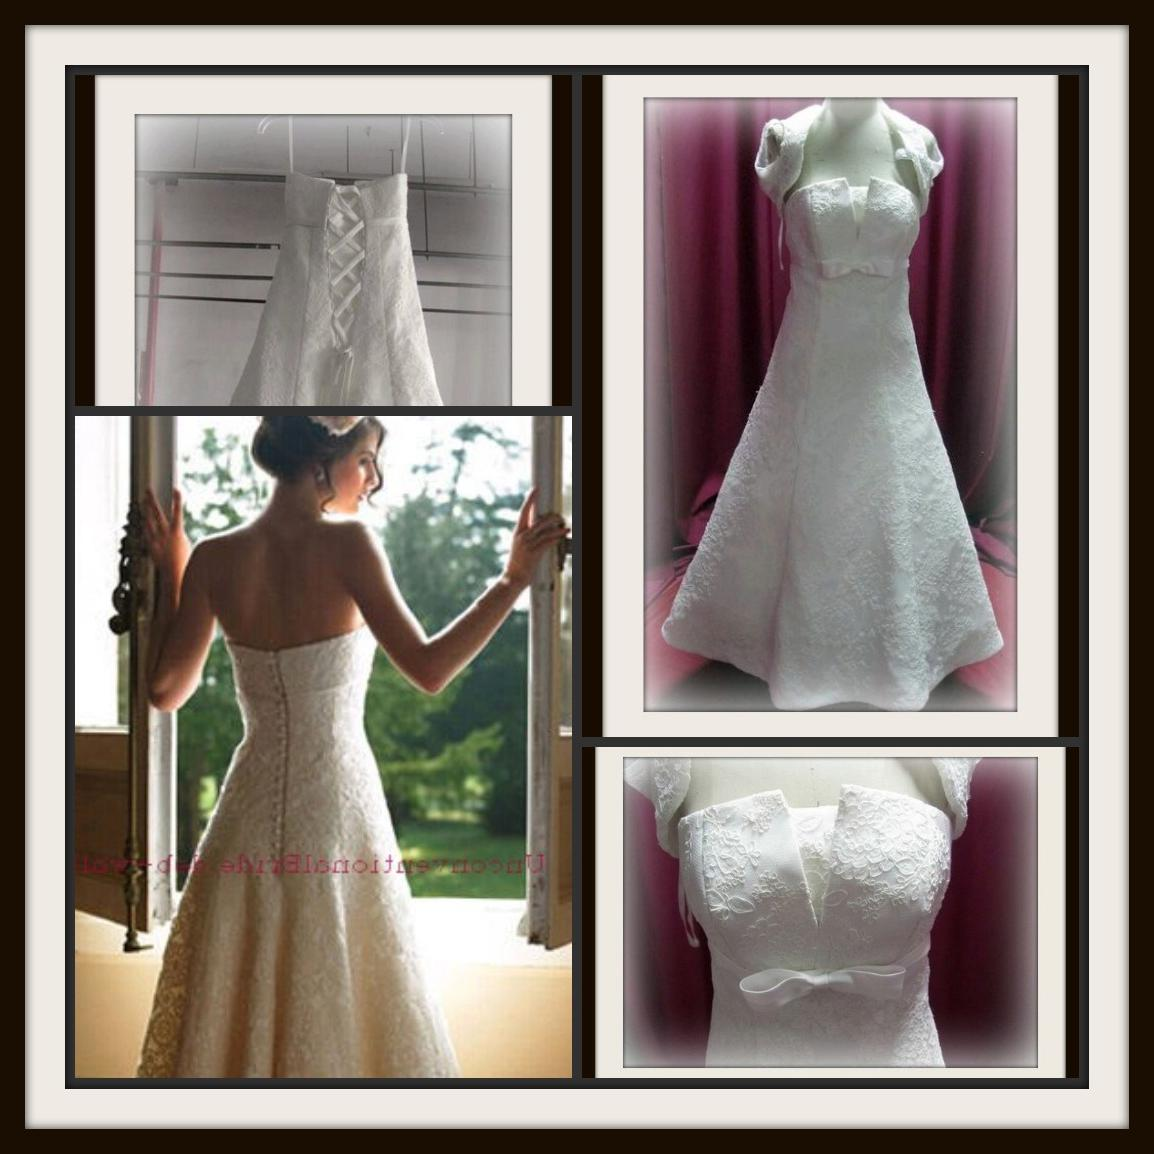 Even replica wedding dresses